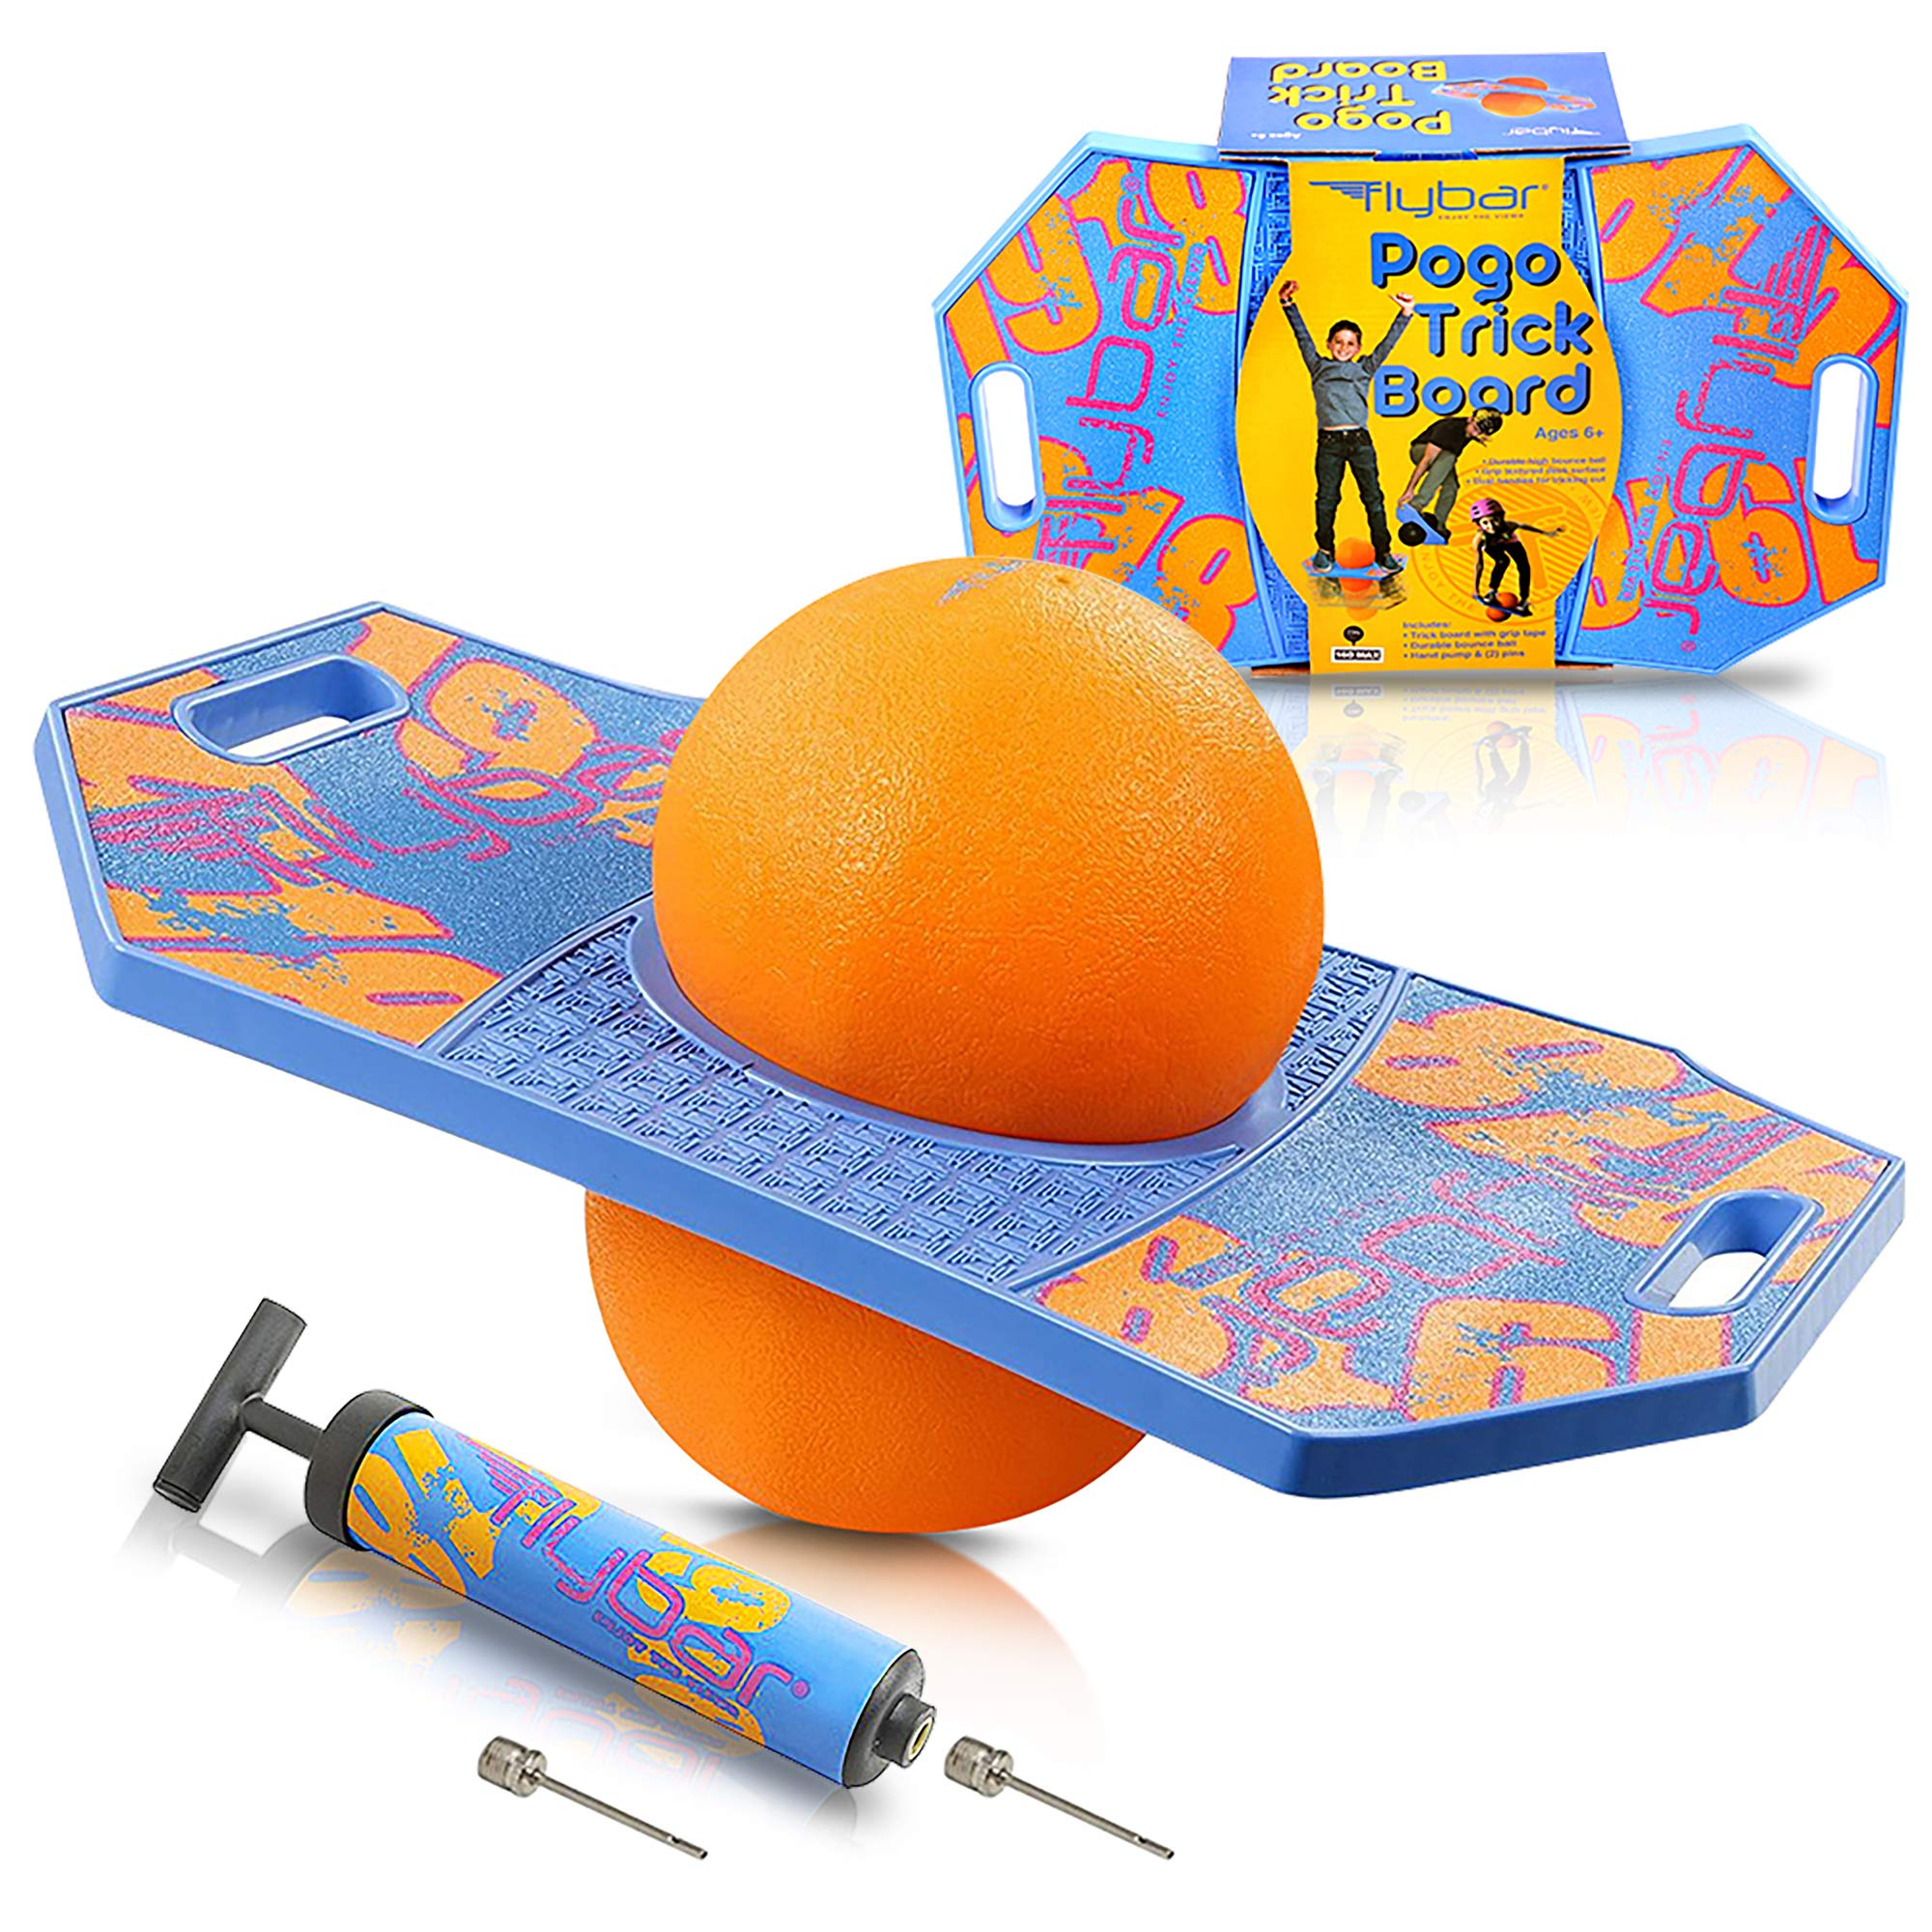 Flybar Pogo Ball for Kids, Jump Trick Bounce Board with Pump and Strong Grip Deck by Flybar